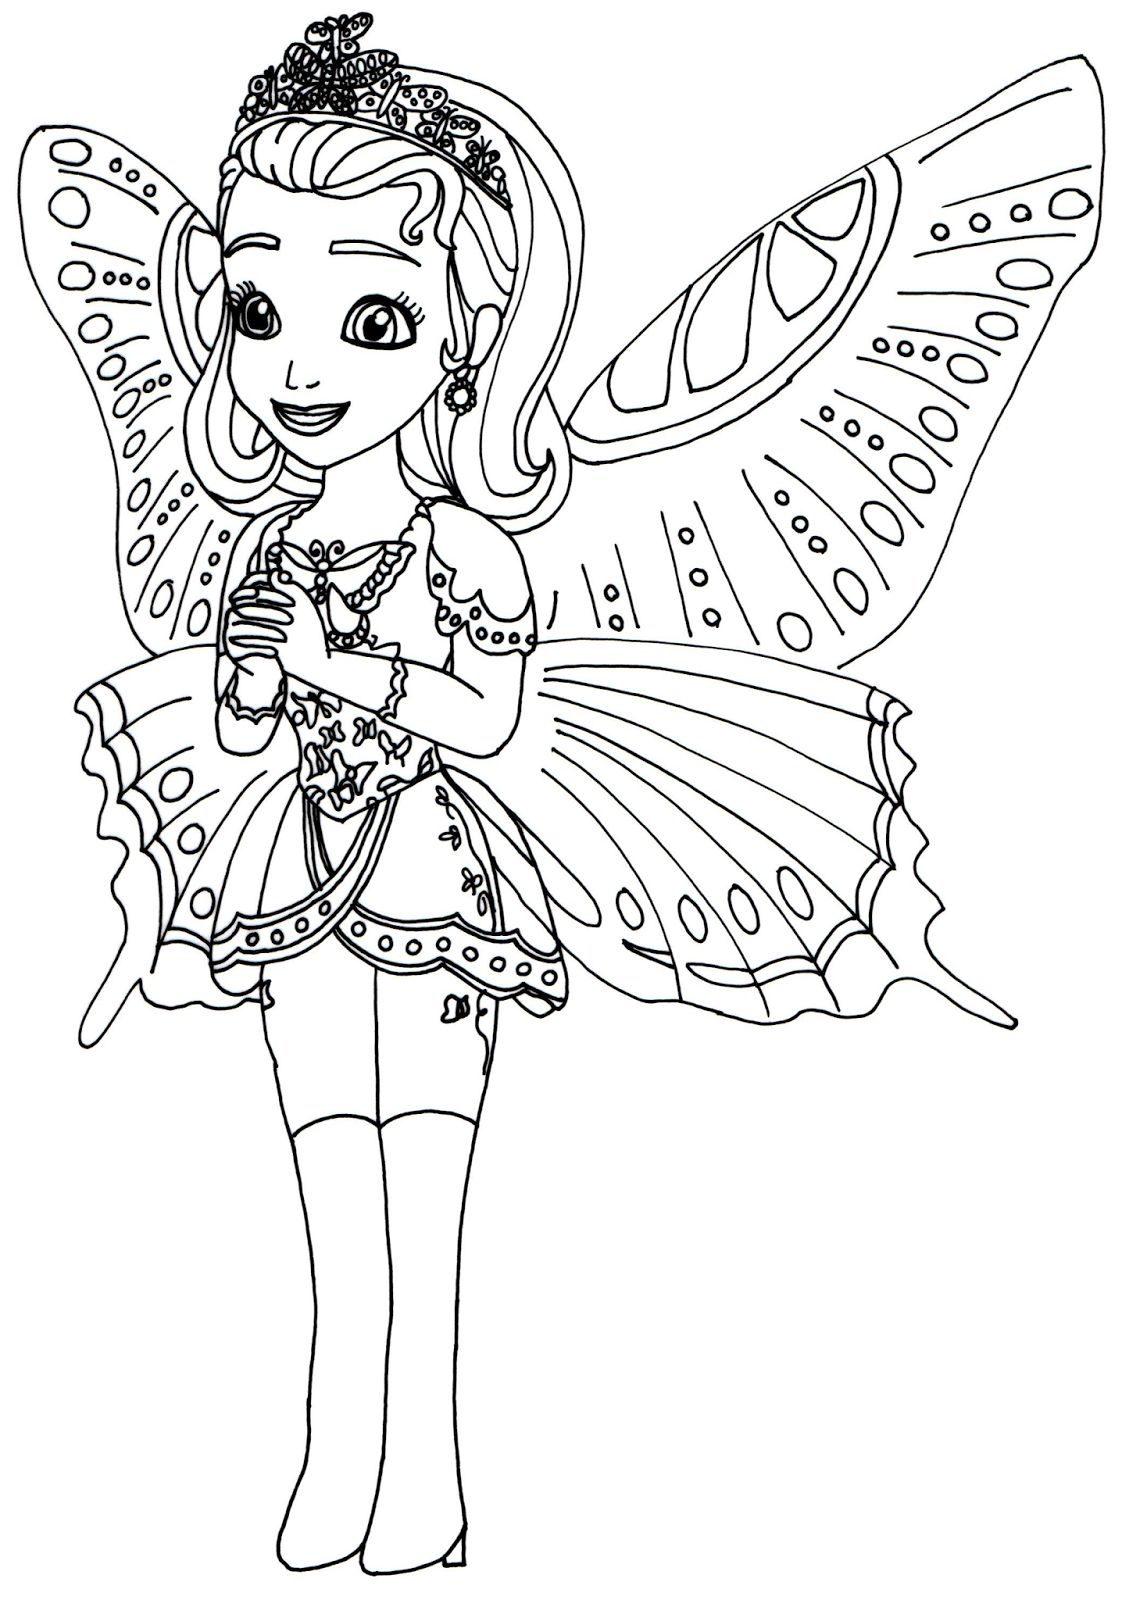 Princess lillifee coloring pages - Sofia The First Coloring Pages Princess Butterfly Sofia The First Coloring Page